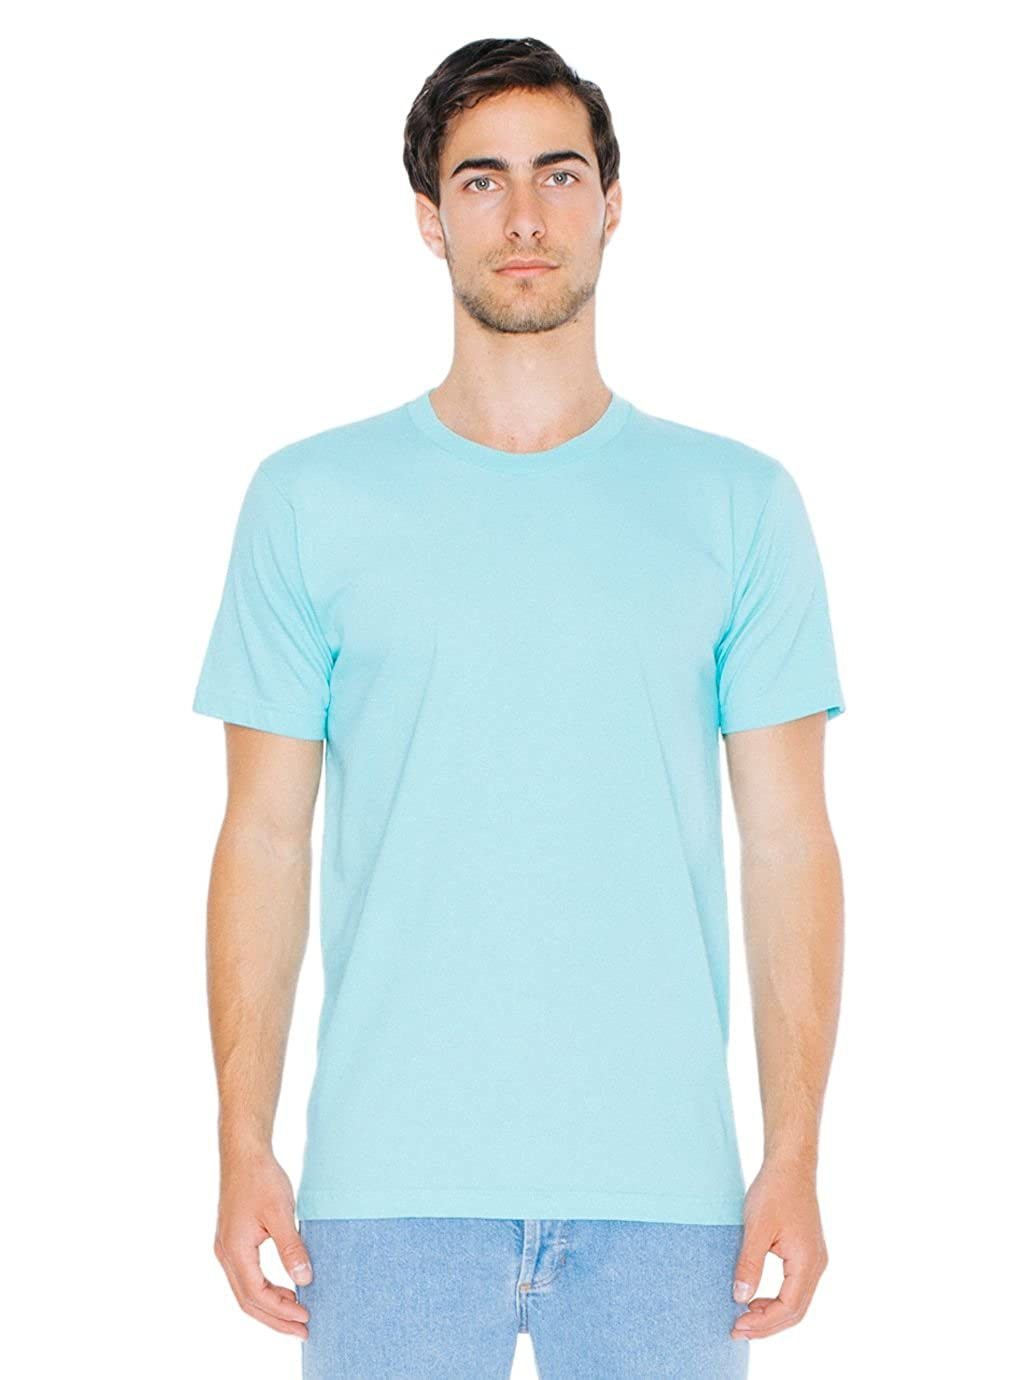 88230e9fa Amazon.com: American Apparel Men's Unisex Fine Jersey Short-Sleeve T-Shirt:  Clothing